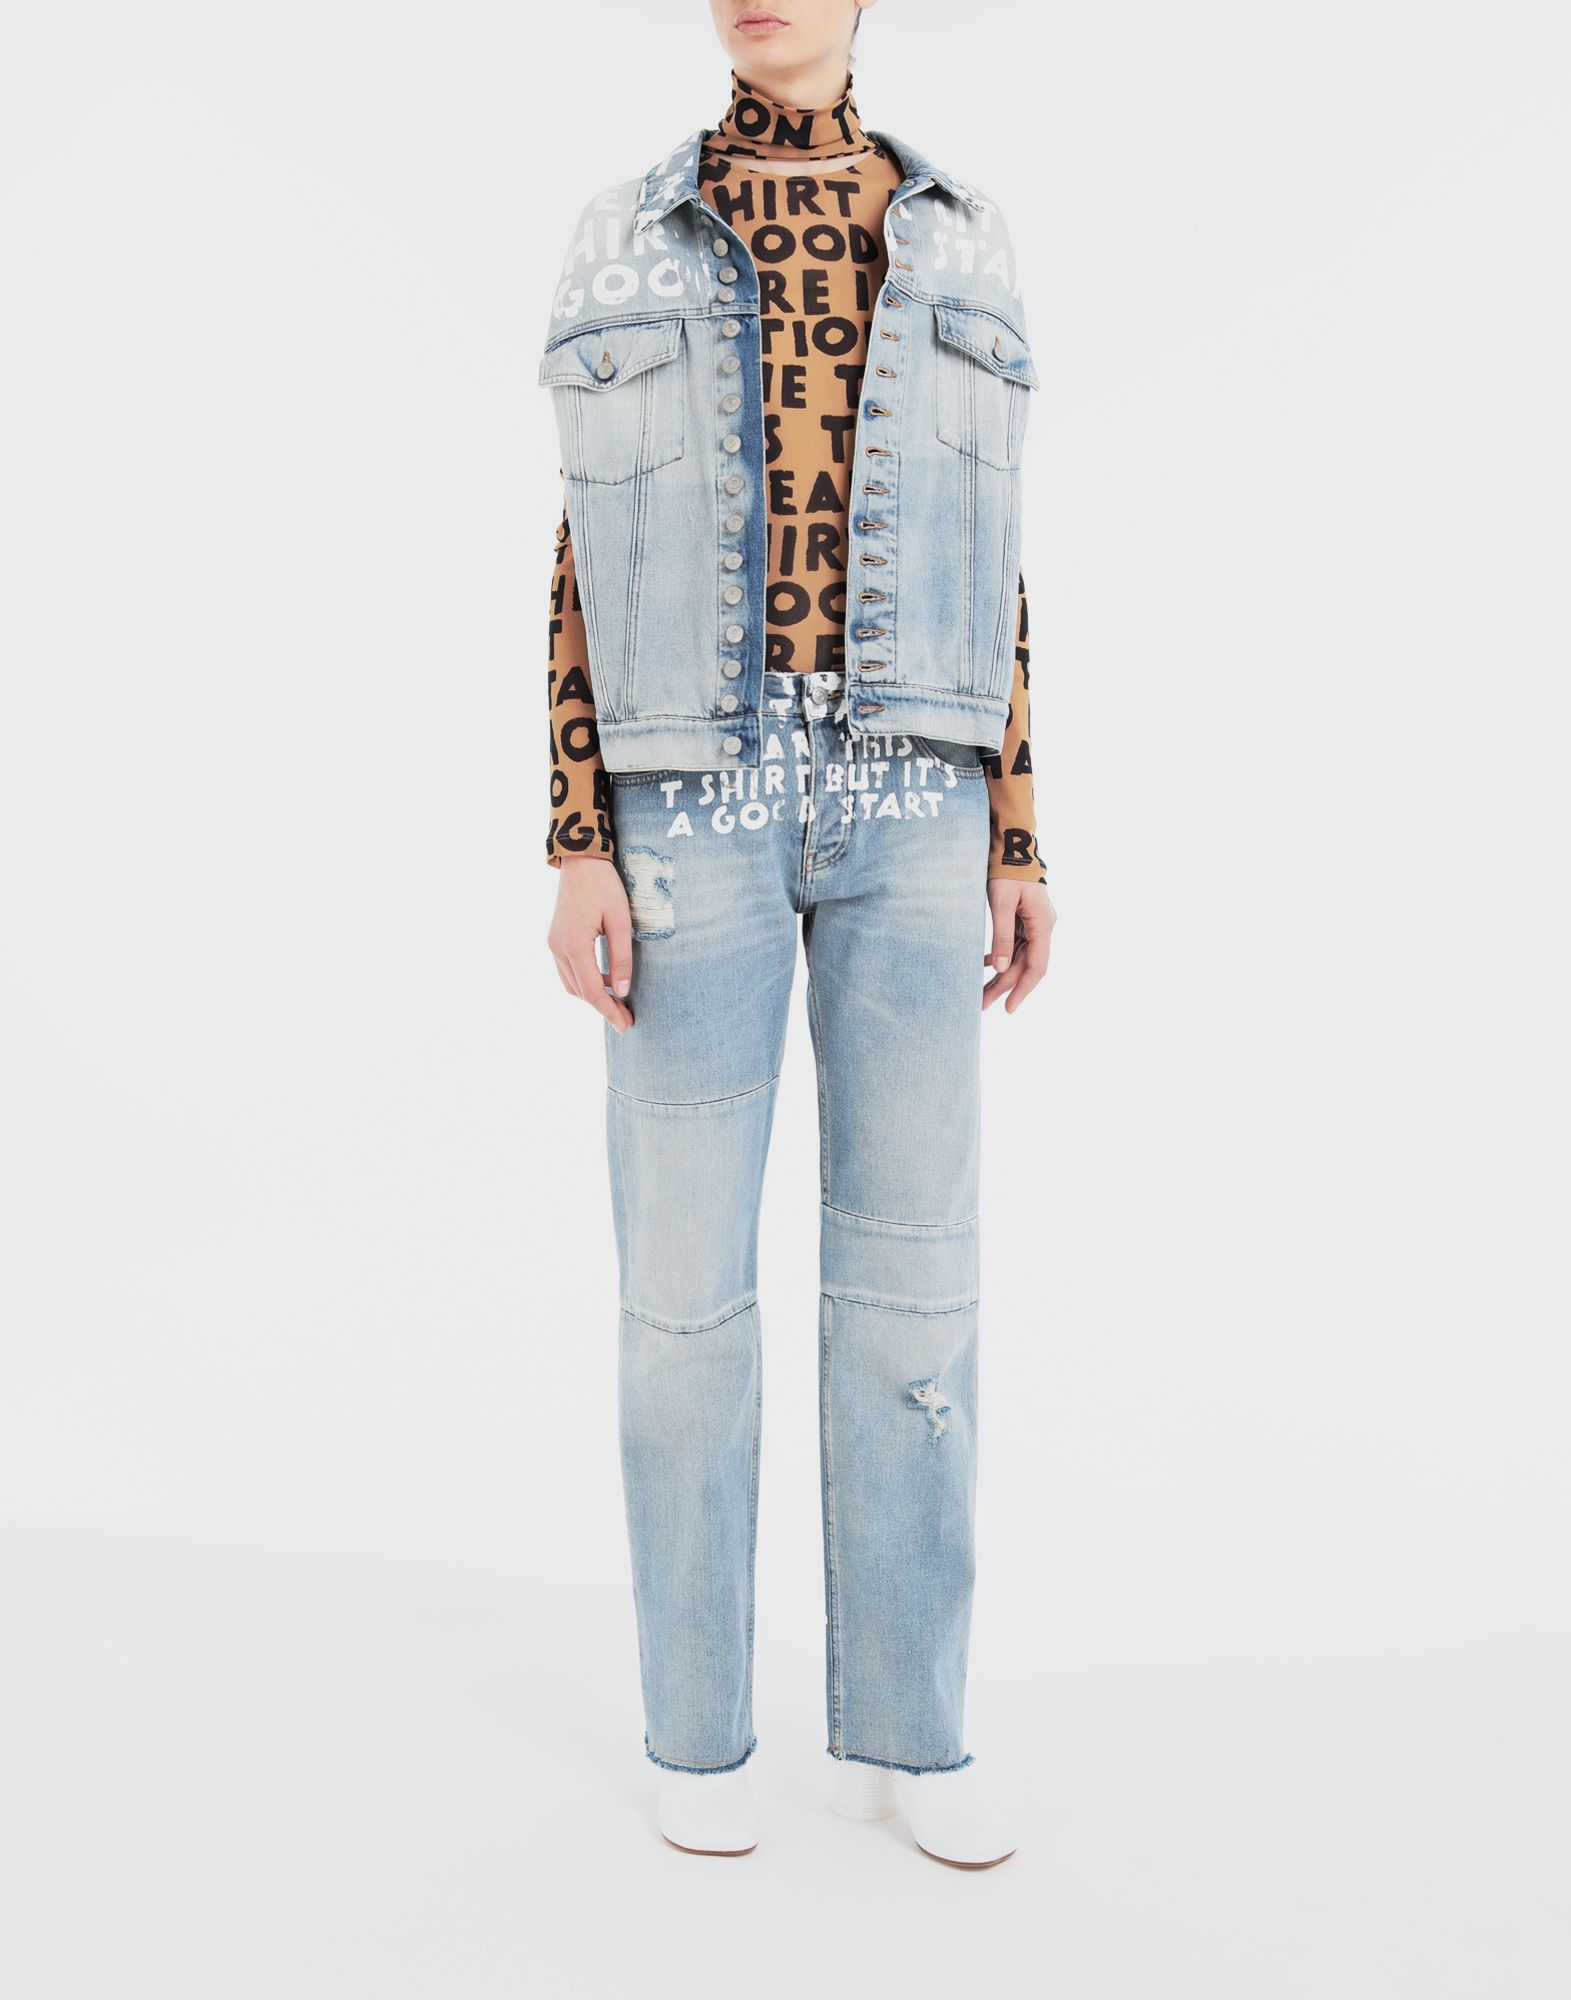 MM6 MAISON MARGIELA Charity AIDS-print denim pants Jeans Woman d